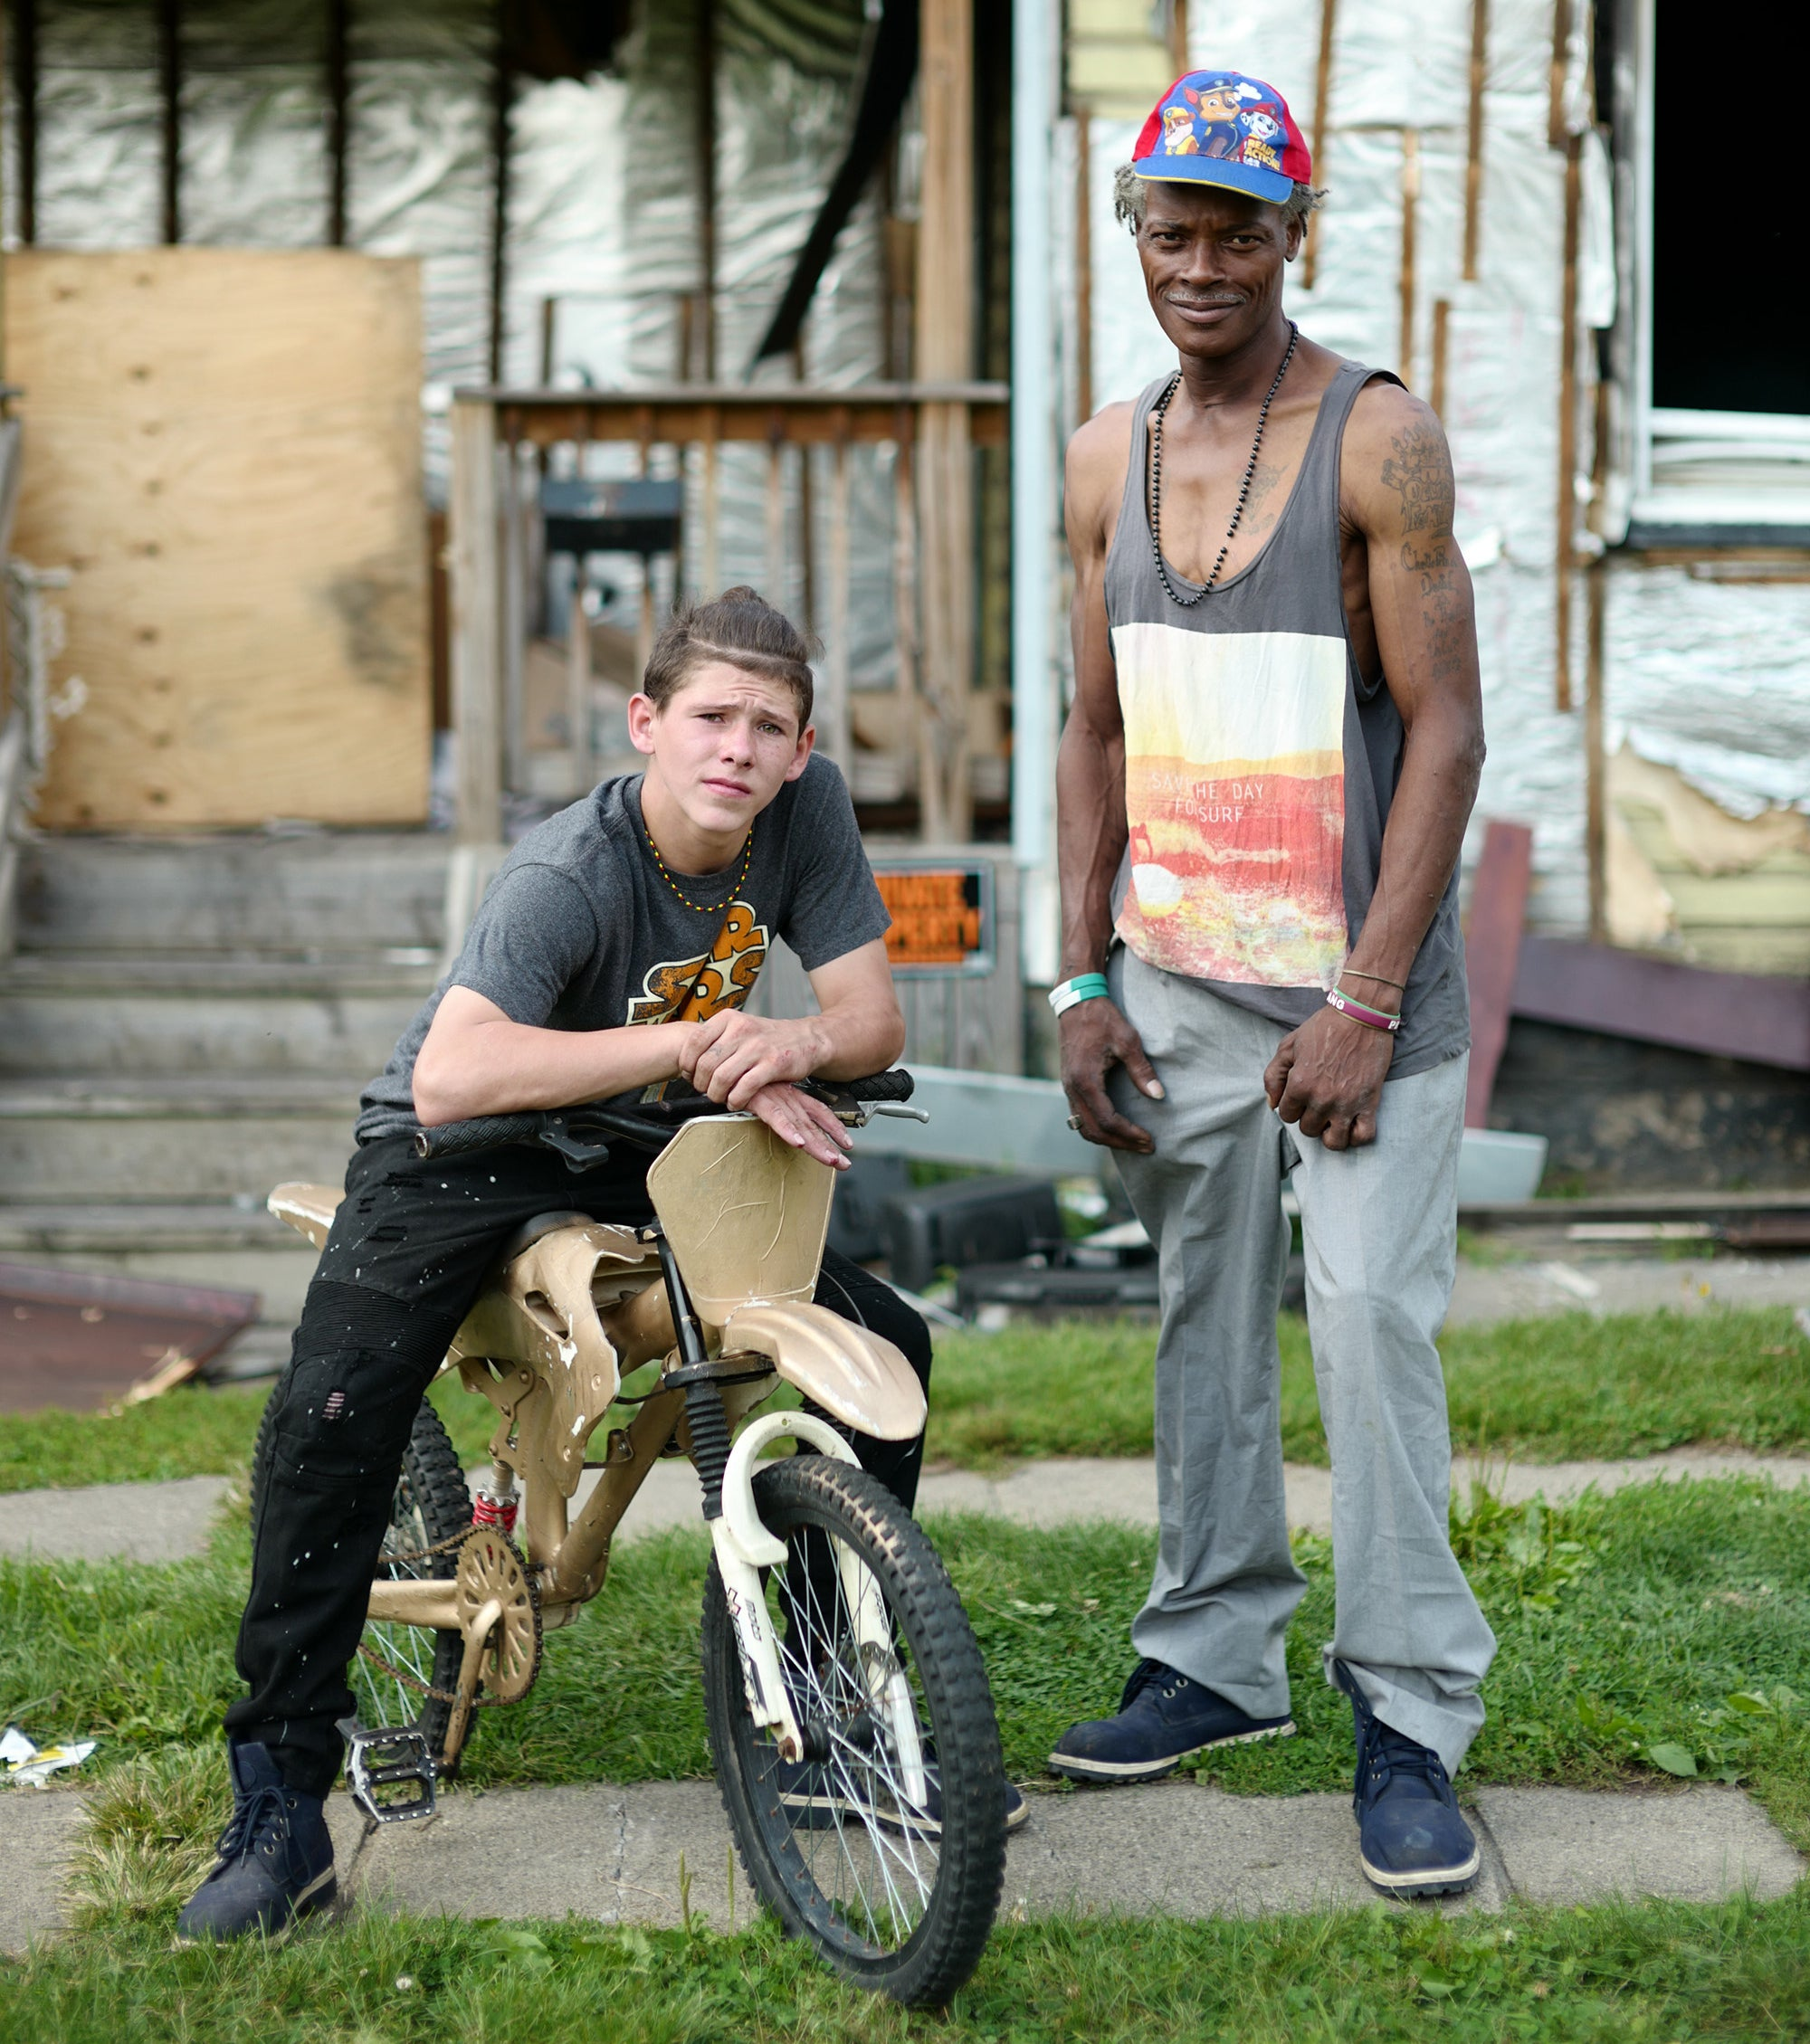 A boy on a bike and a man standing in front of a boarded-up house